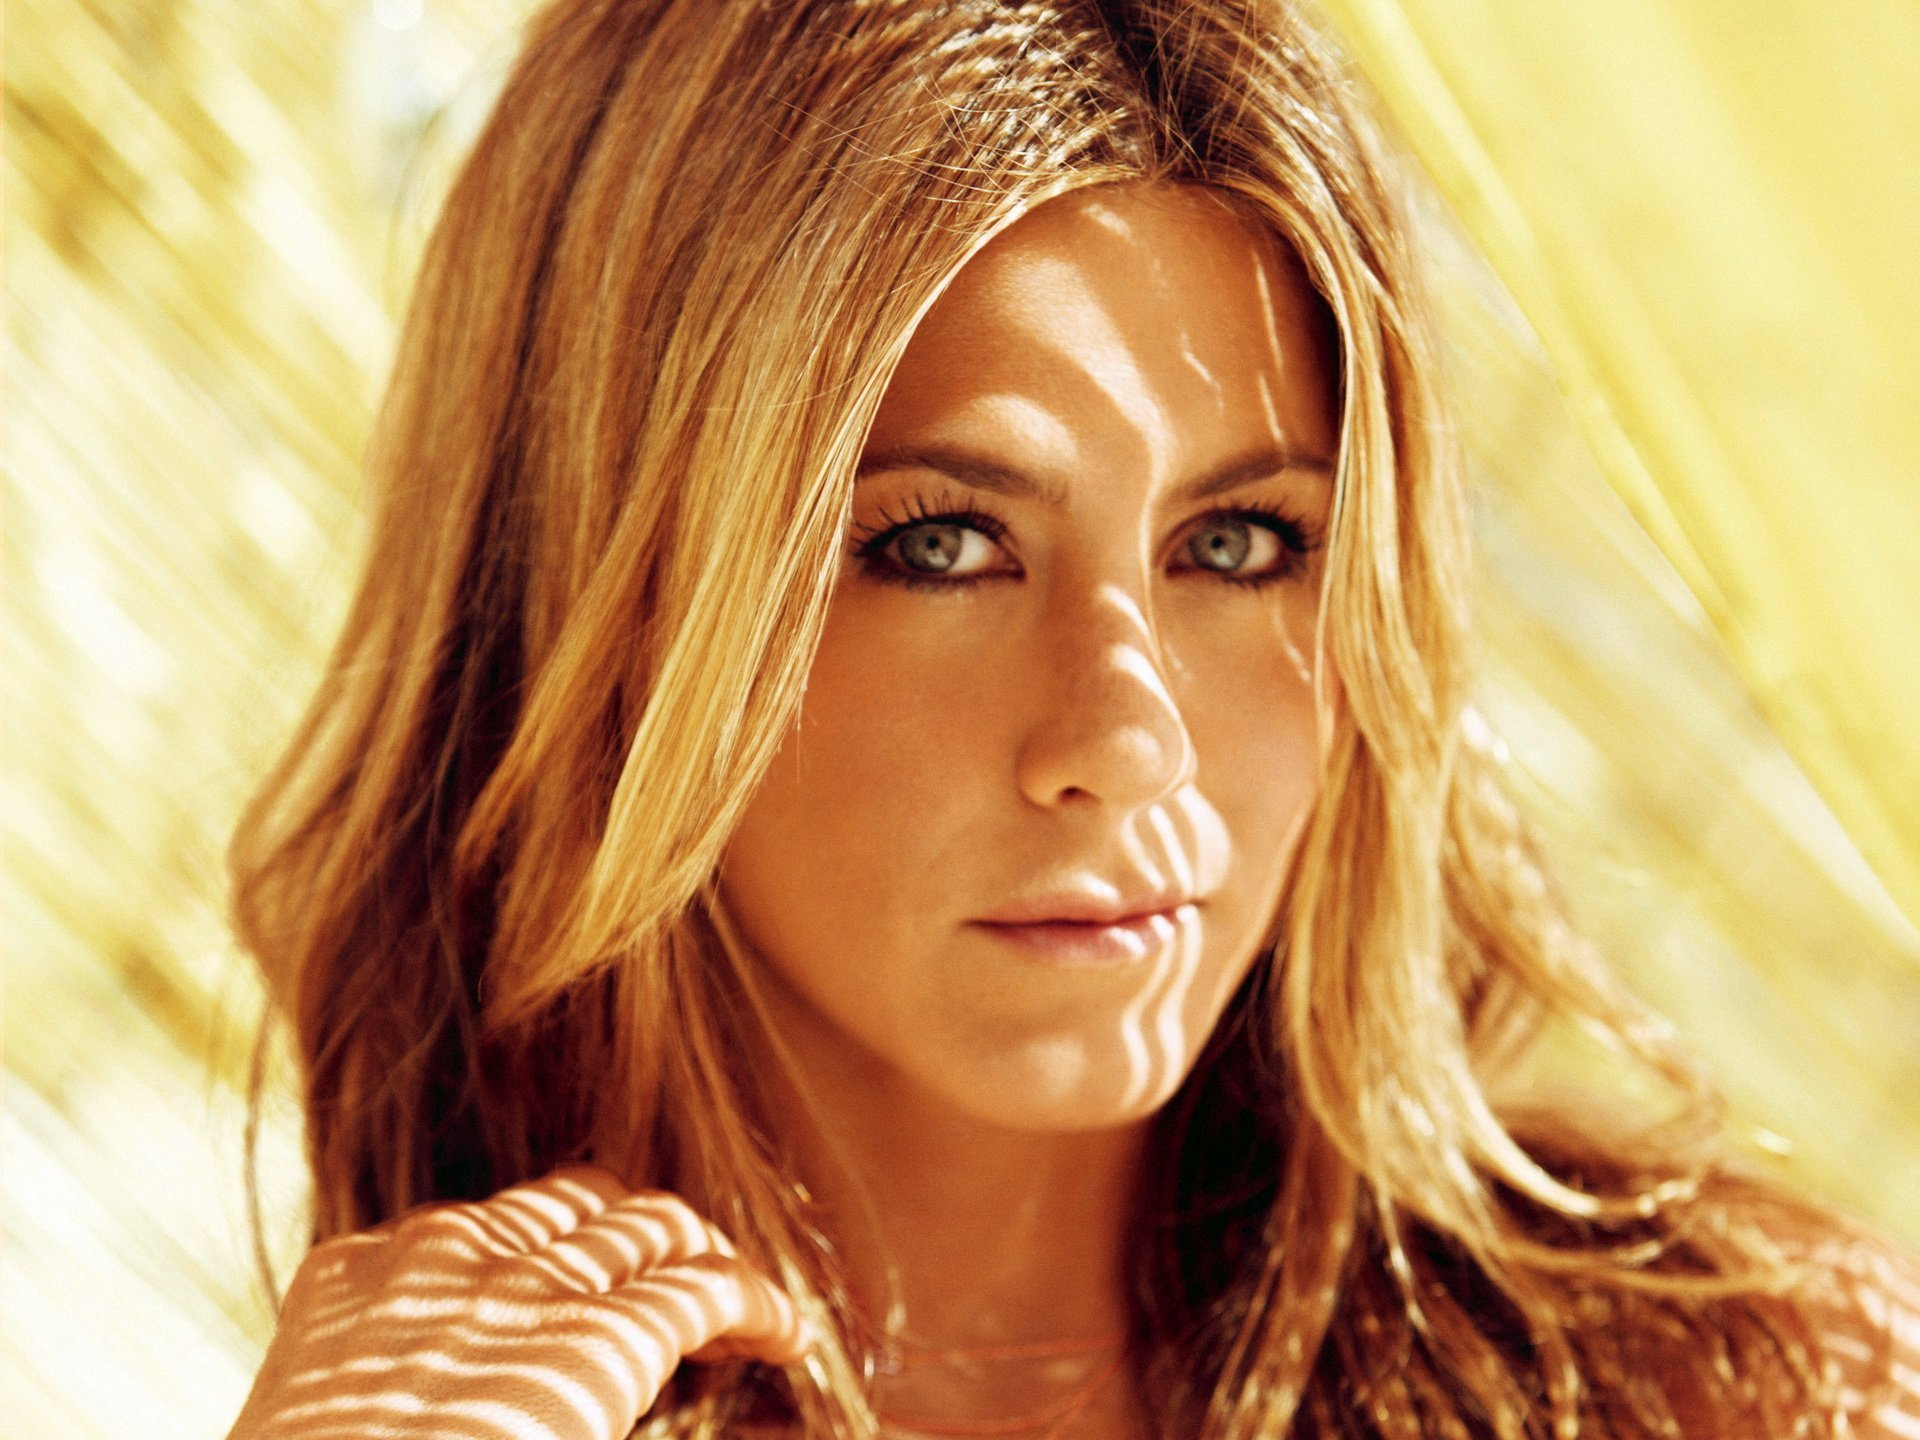 Foto imperdible de Jennifer Aniston al natural